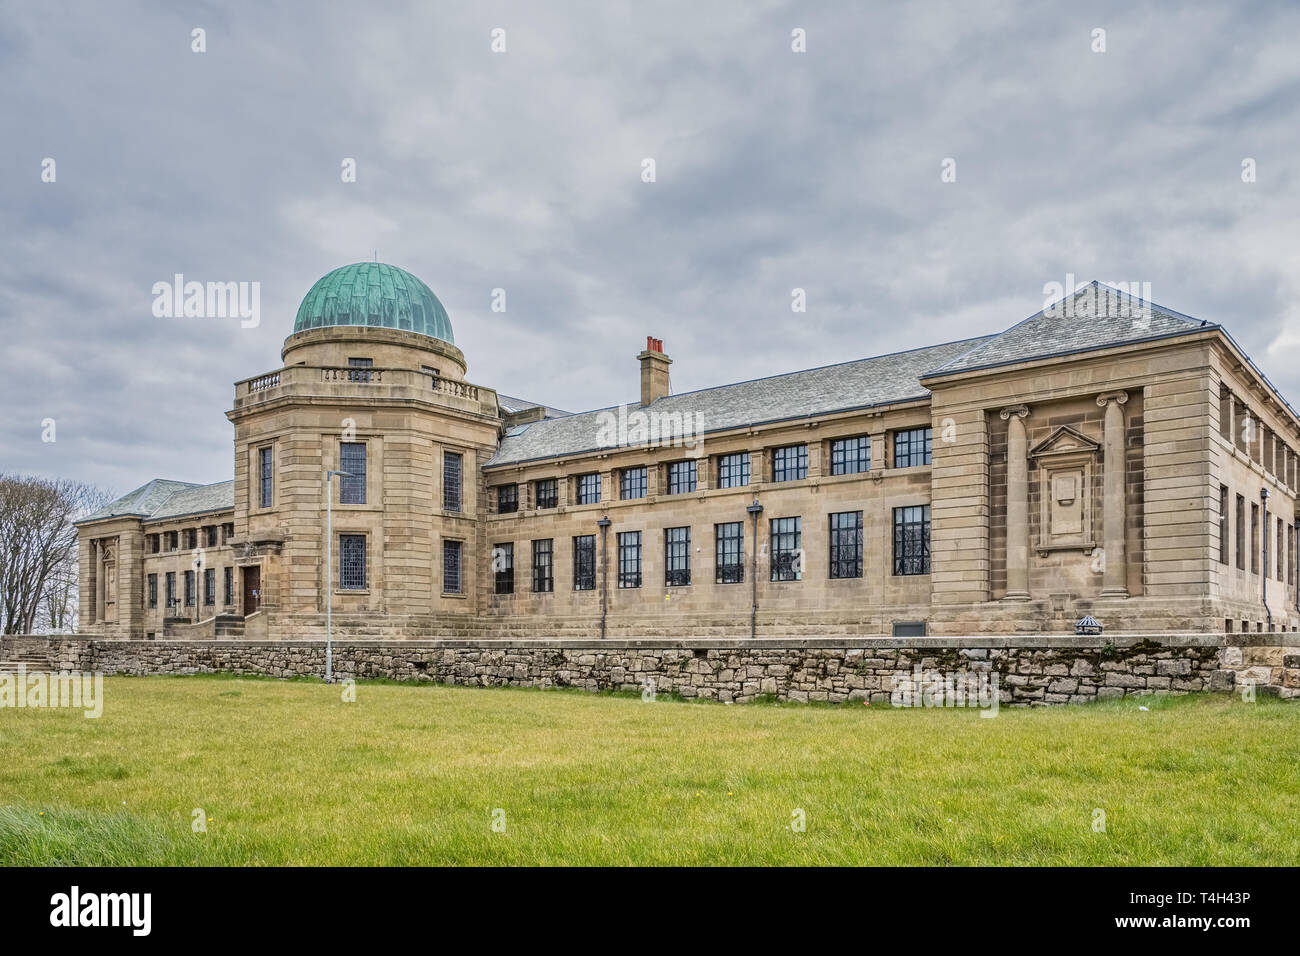 Troon, Scotland, UK - April 14, 2019: The impressive buildings of Marr College a state funded secondary school. It is owned by the Marr Trust and is o Stock Photo